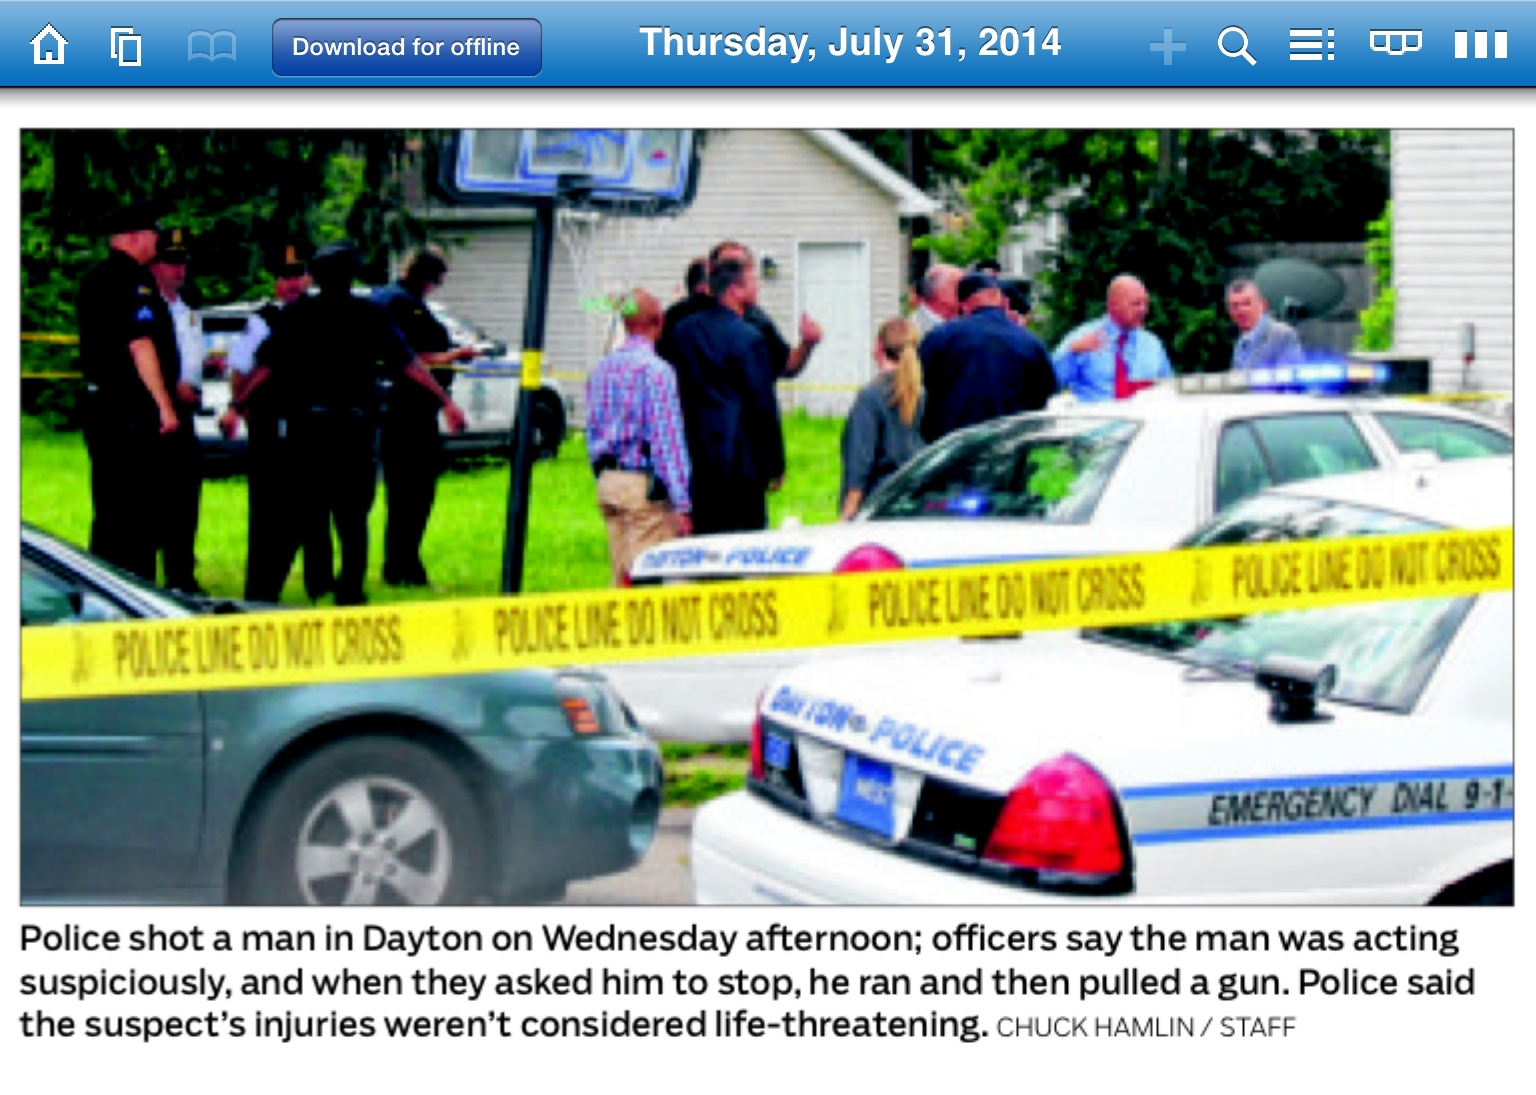 Crime scene photo in Dayton Daily news with Esrati net and sticker in background